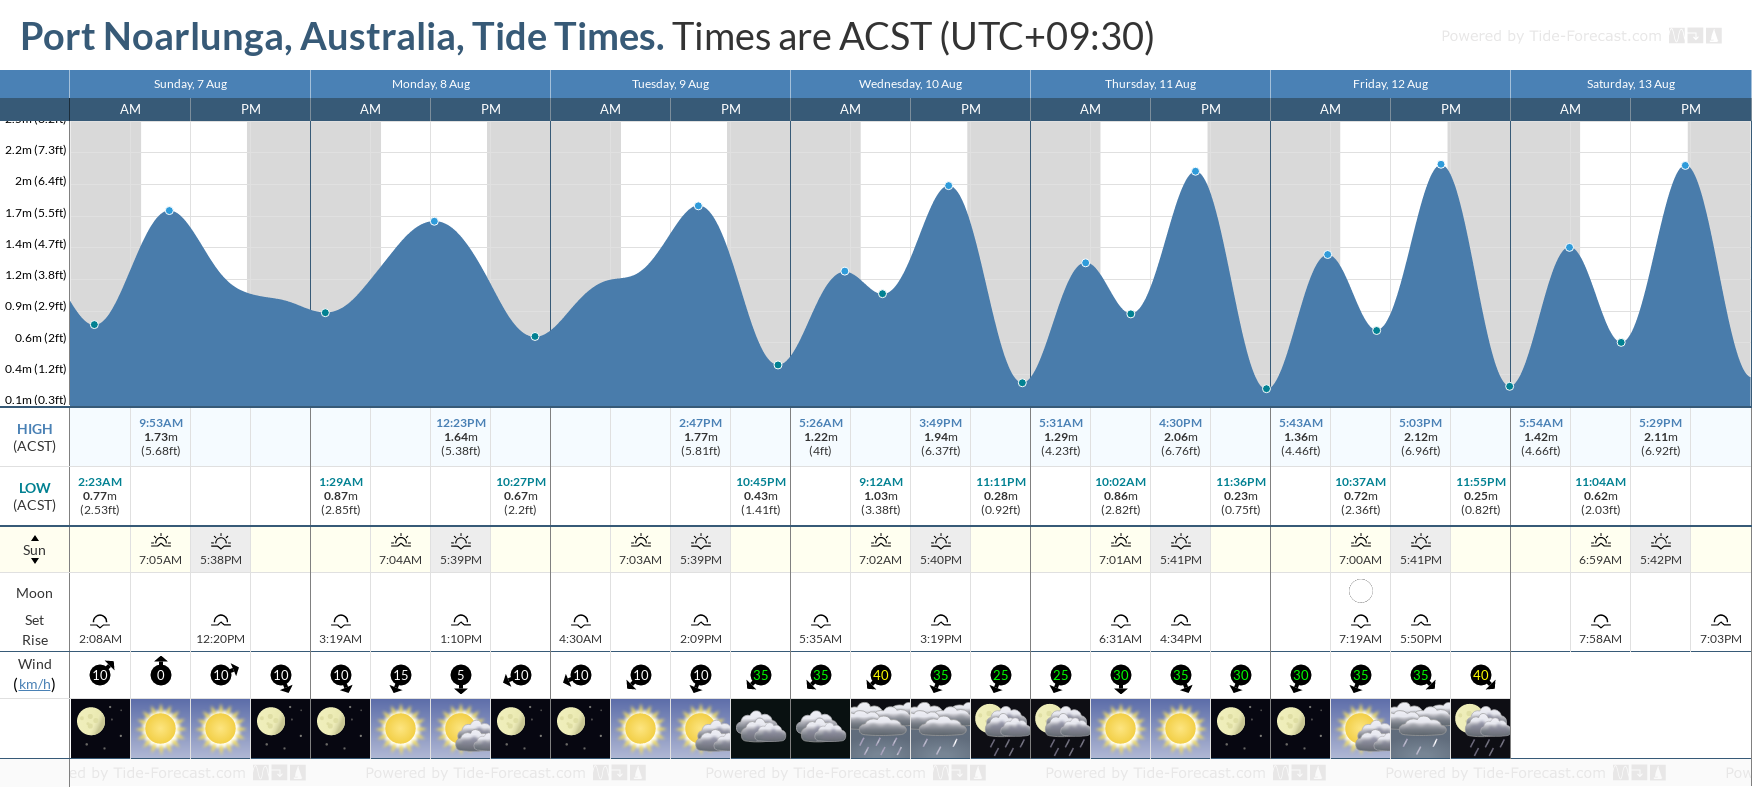 Port Noarlunga, Australia Tide Chart including high and low tide tide times for the next 7 days